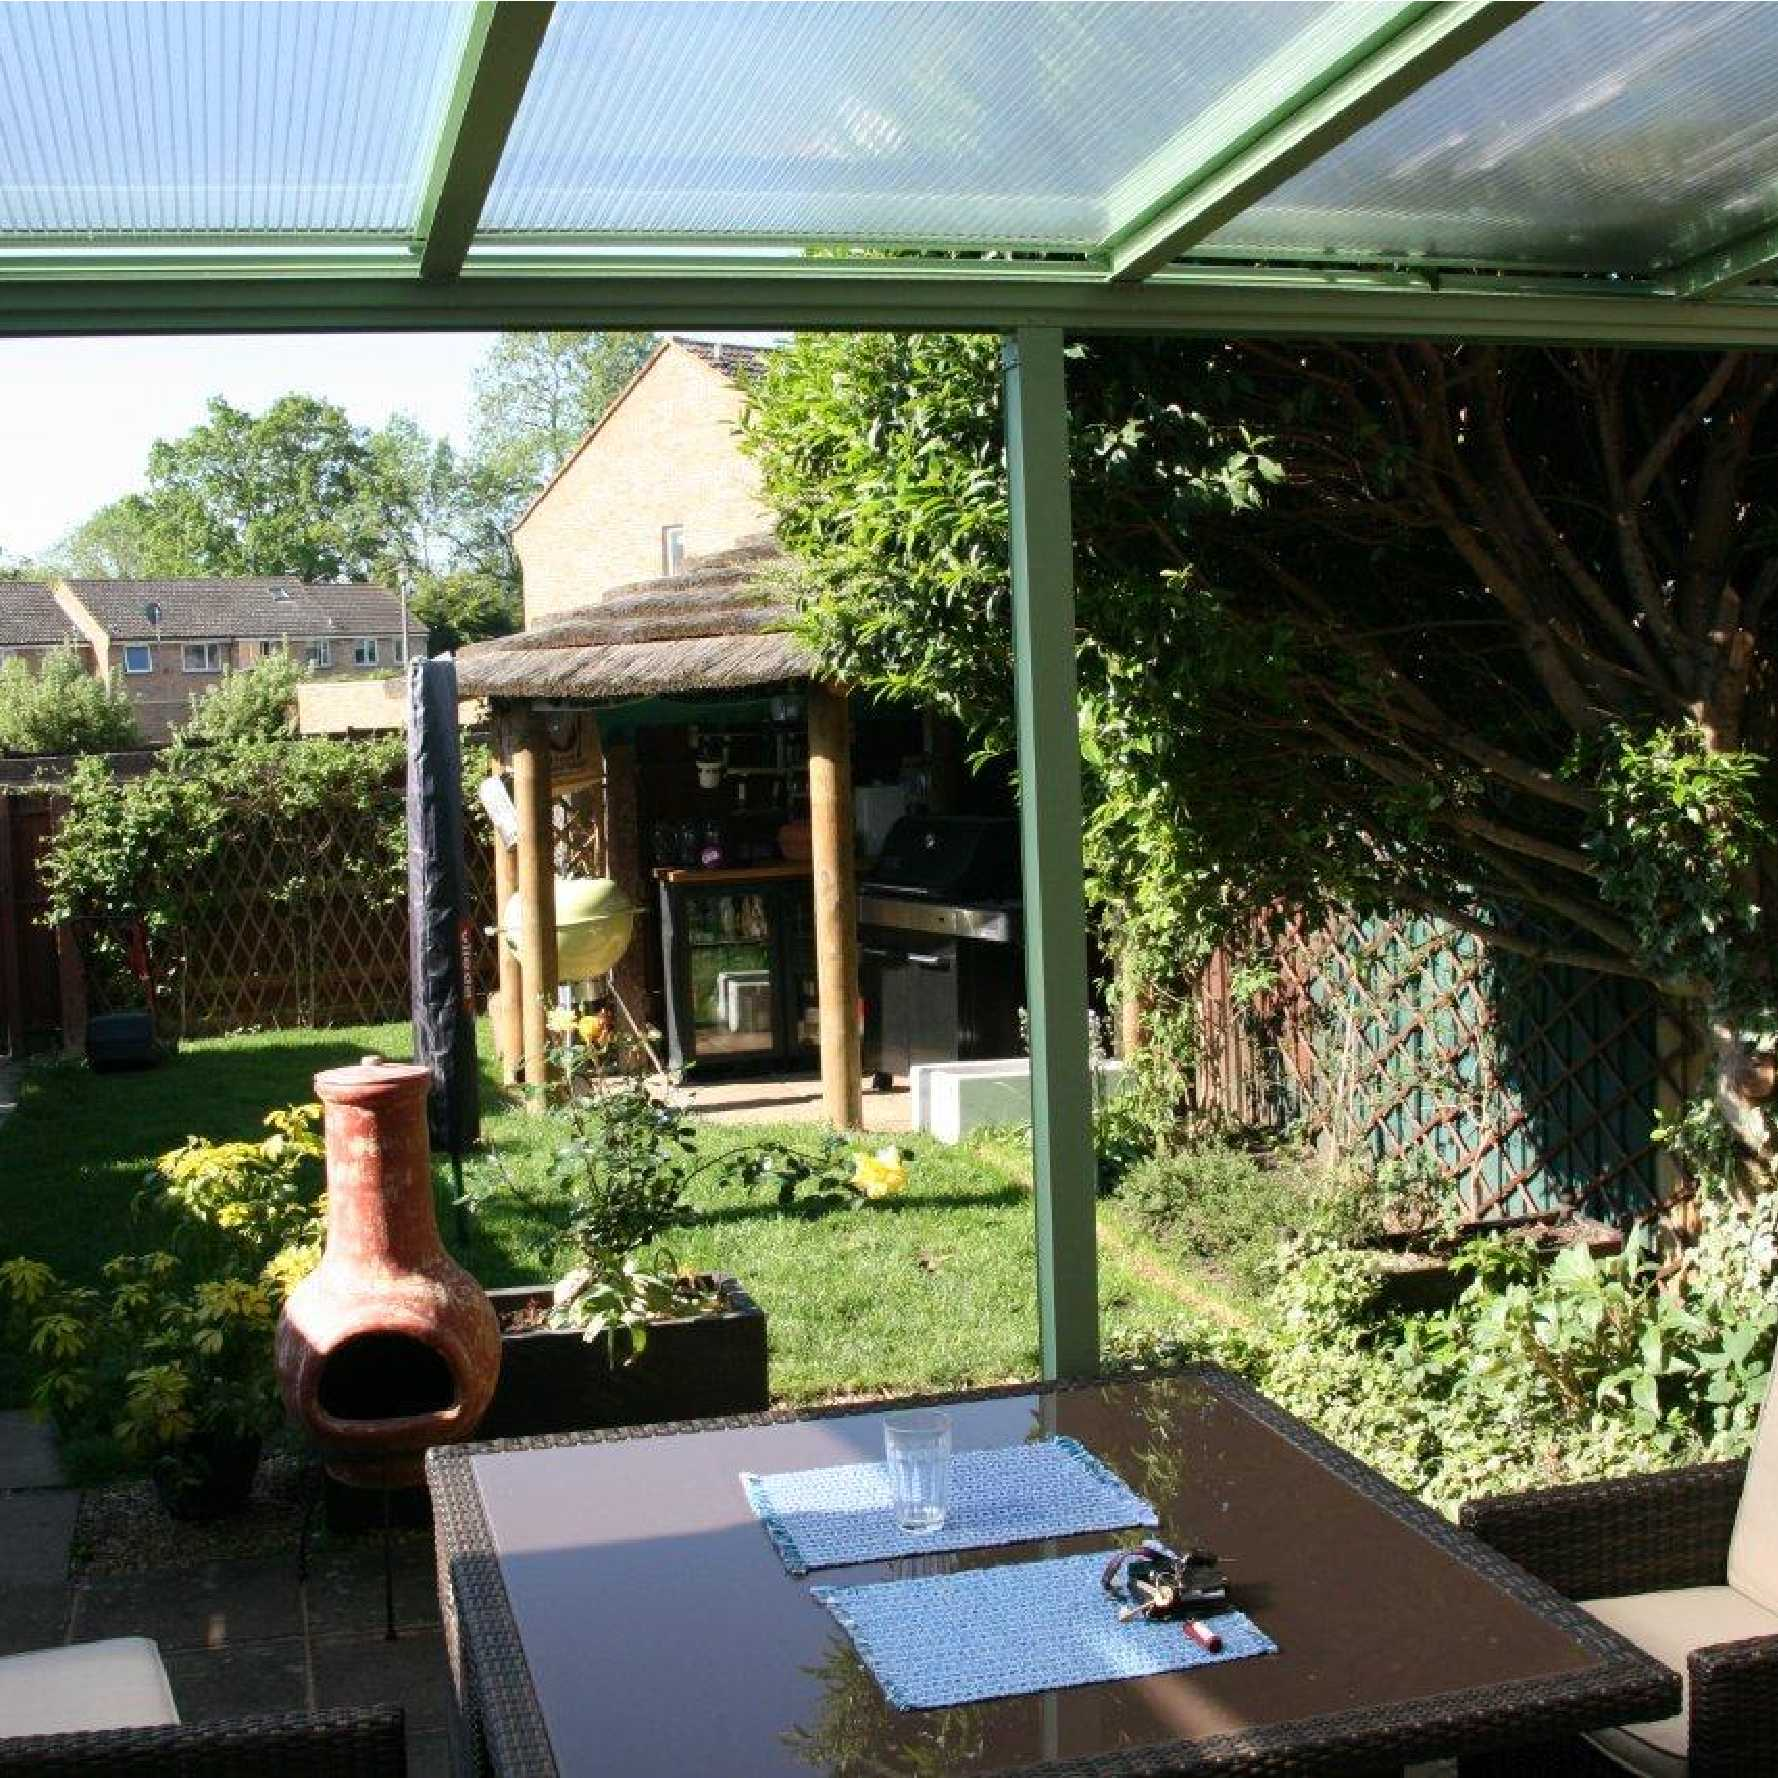 Affordable Omega Smart Lean-To Canopy with 16mm Polycarbonate Glazing - 2.1m (W) x 3.5m (P), (2) Supporting Posts